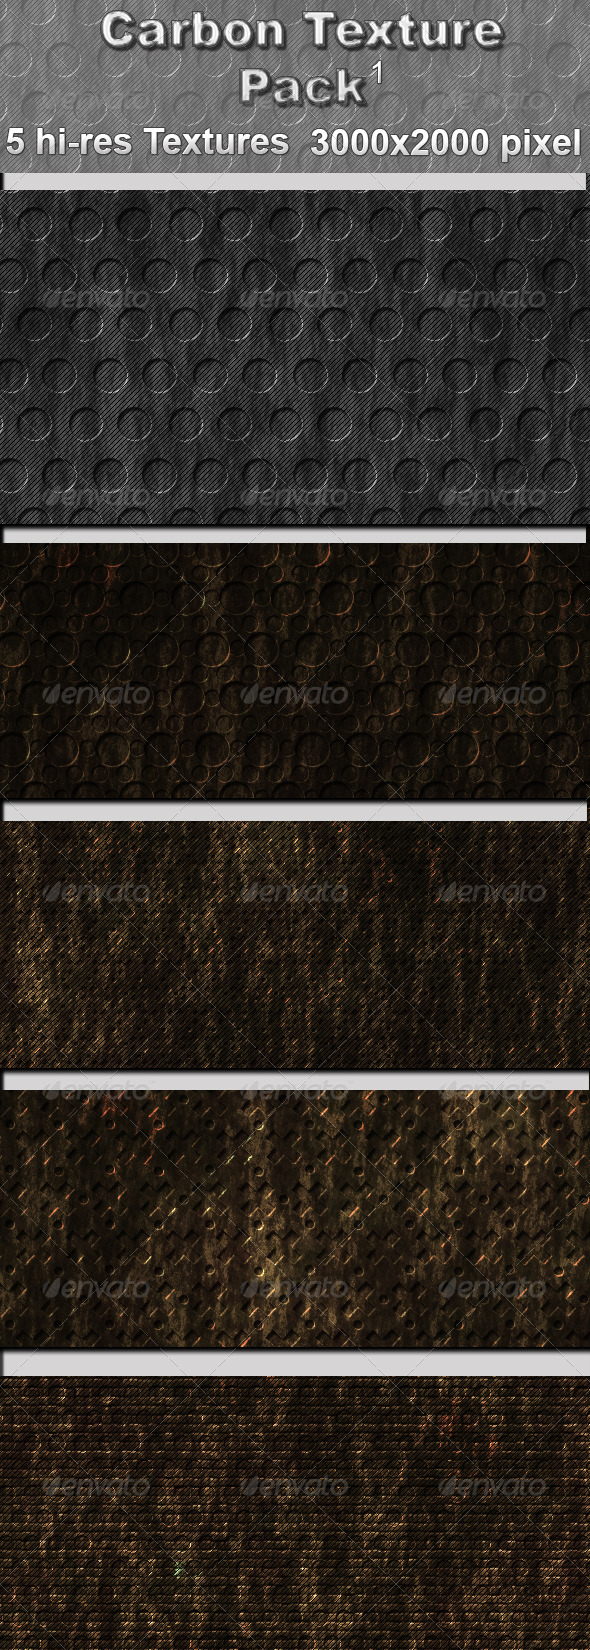 Carbon Texture Pack - 1 - Metal Textures